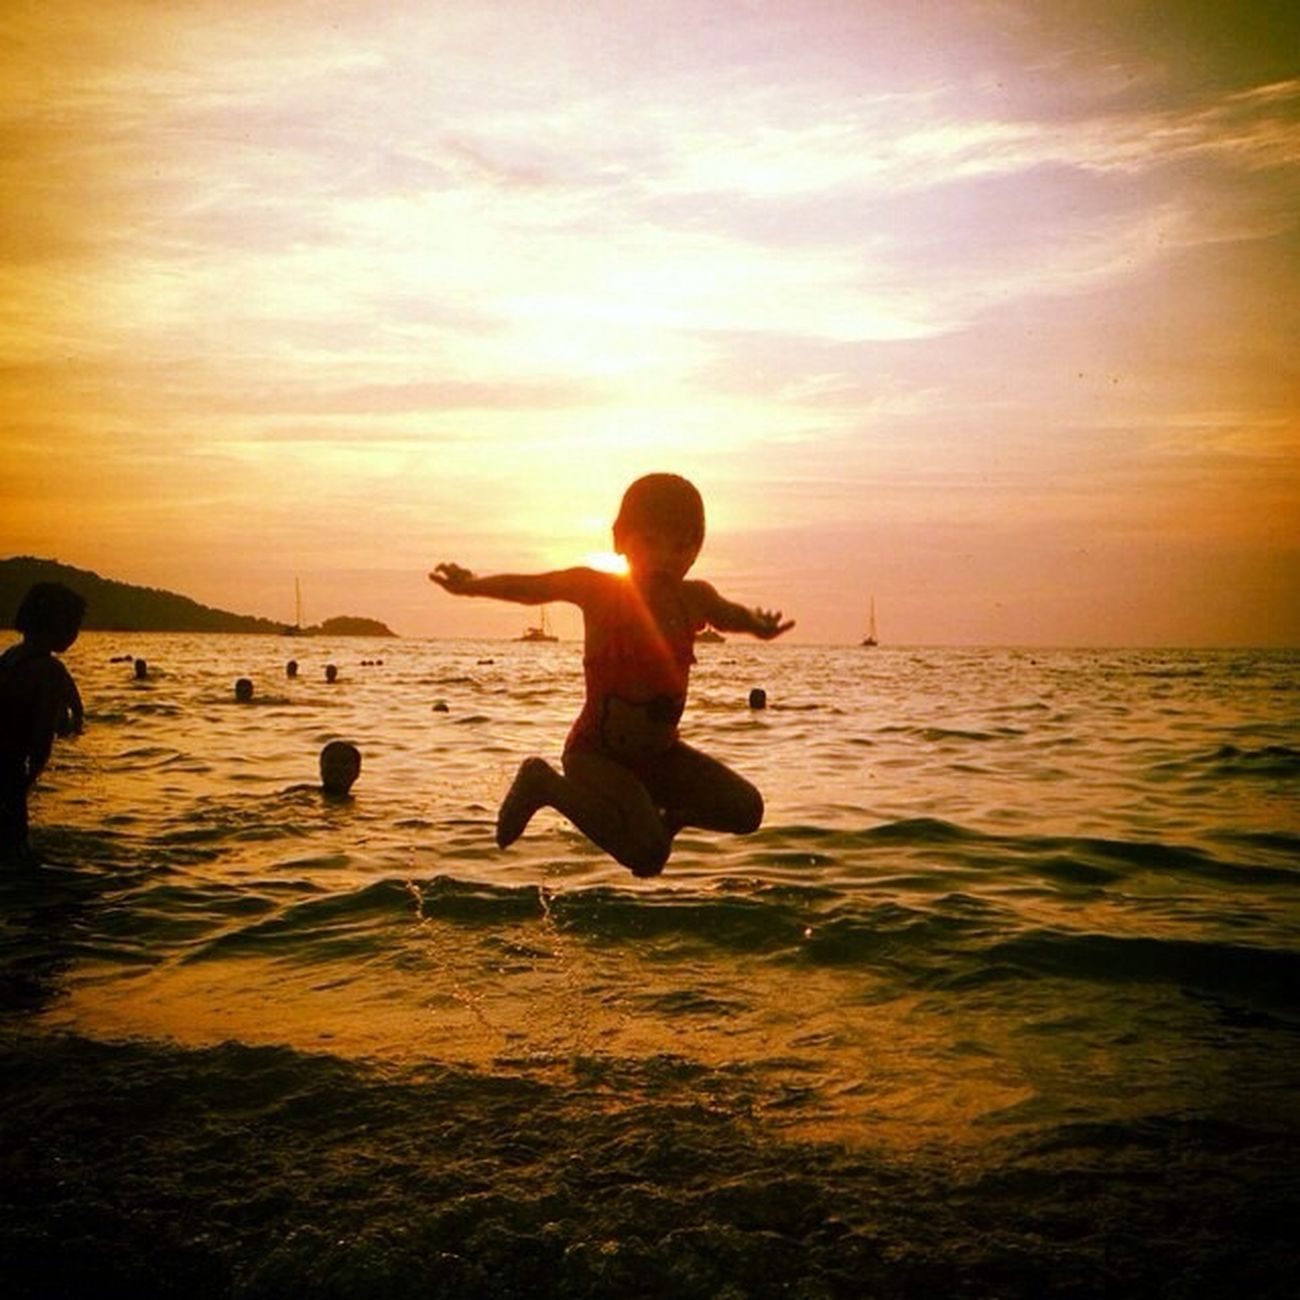 Beach Onthebeachsea sun sand and kids Theamazinghumanbody Enjoying The Sun EyeEm Best Shots Light And Shadow Love Is In The Air EyeEm Nature Lover Sunset Flying